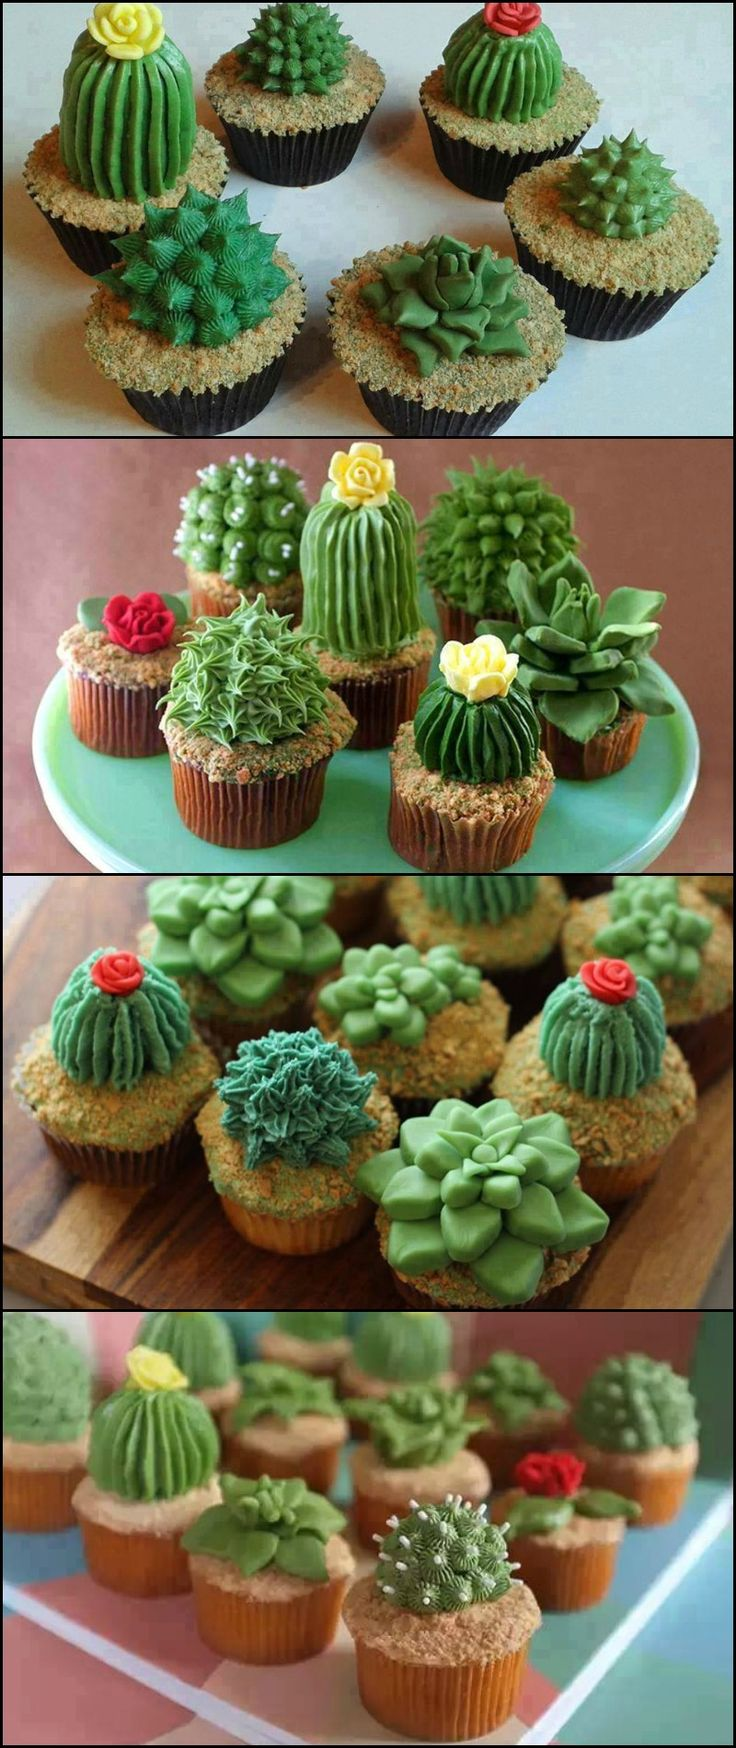 How to Make Succulent Cupcakes  http://food.ideas2live4.com/2015/11/17/how-to-make-succulent-cupcakes/  If you're looking for a really cute dessert to serve at your next gathering, this idea might just be the one for you!  Take a look at these impressively realistic succulent cupcakes we've collected for you and be inspired to make some yourself!